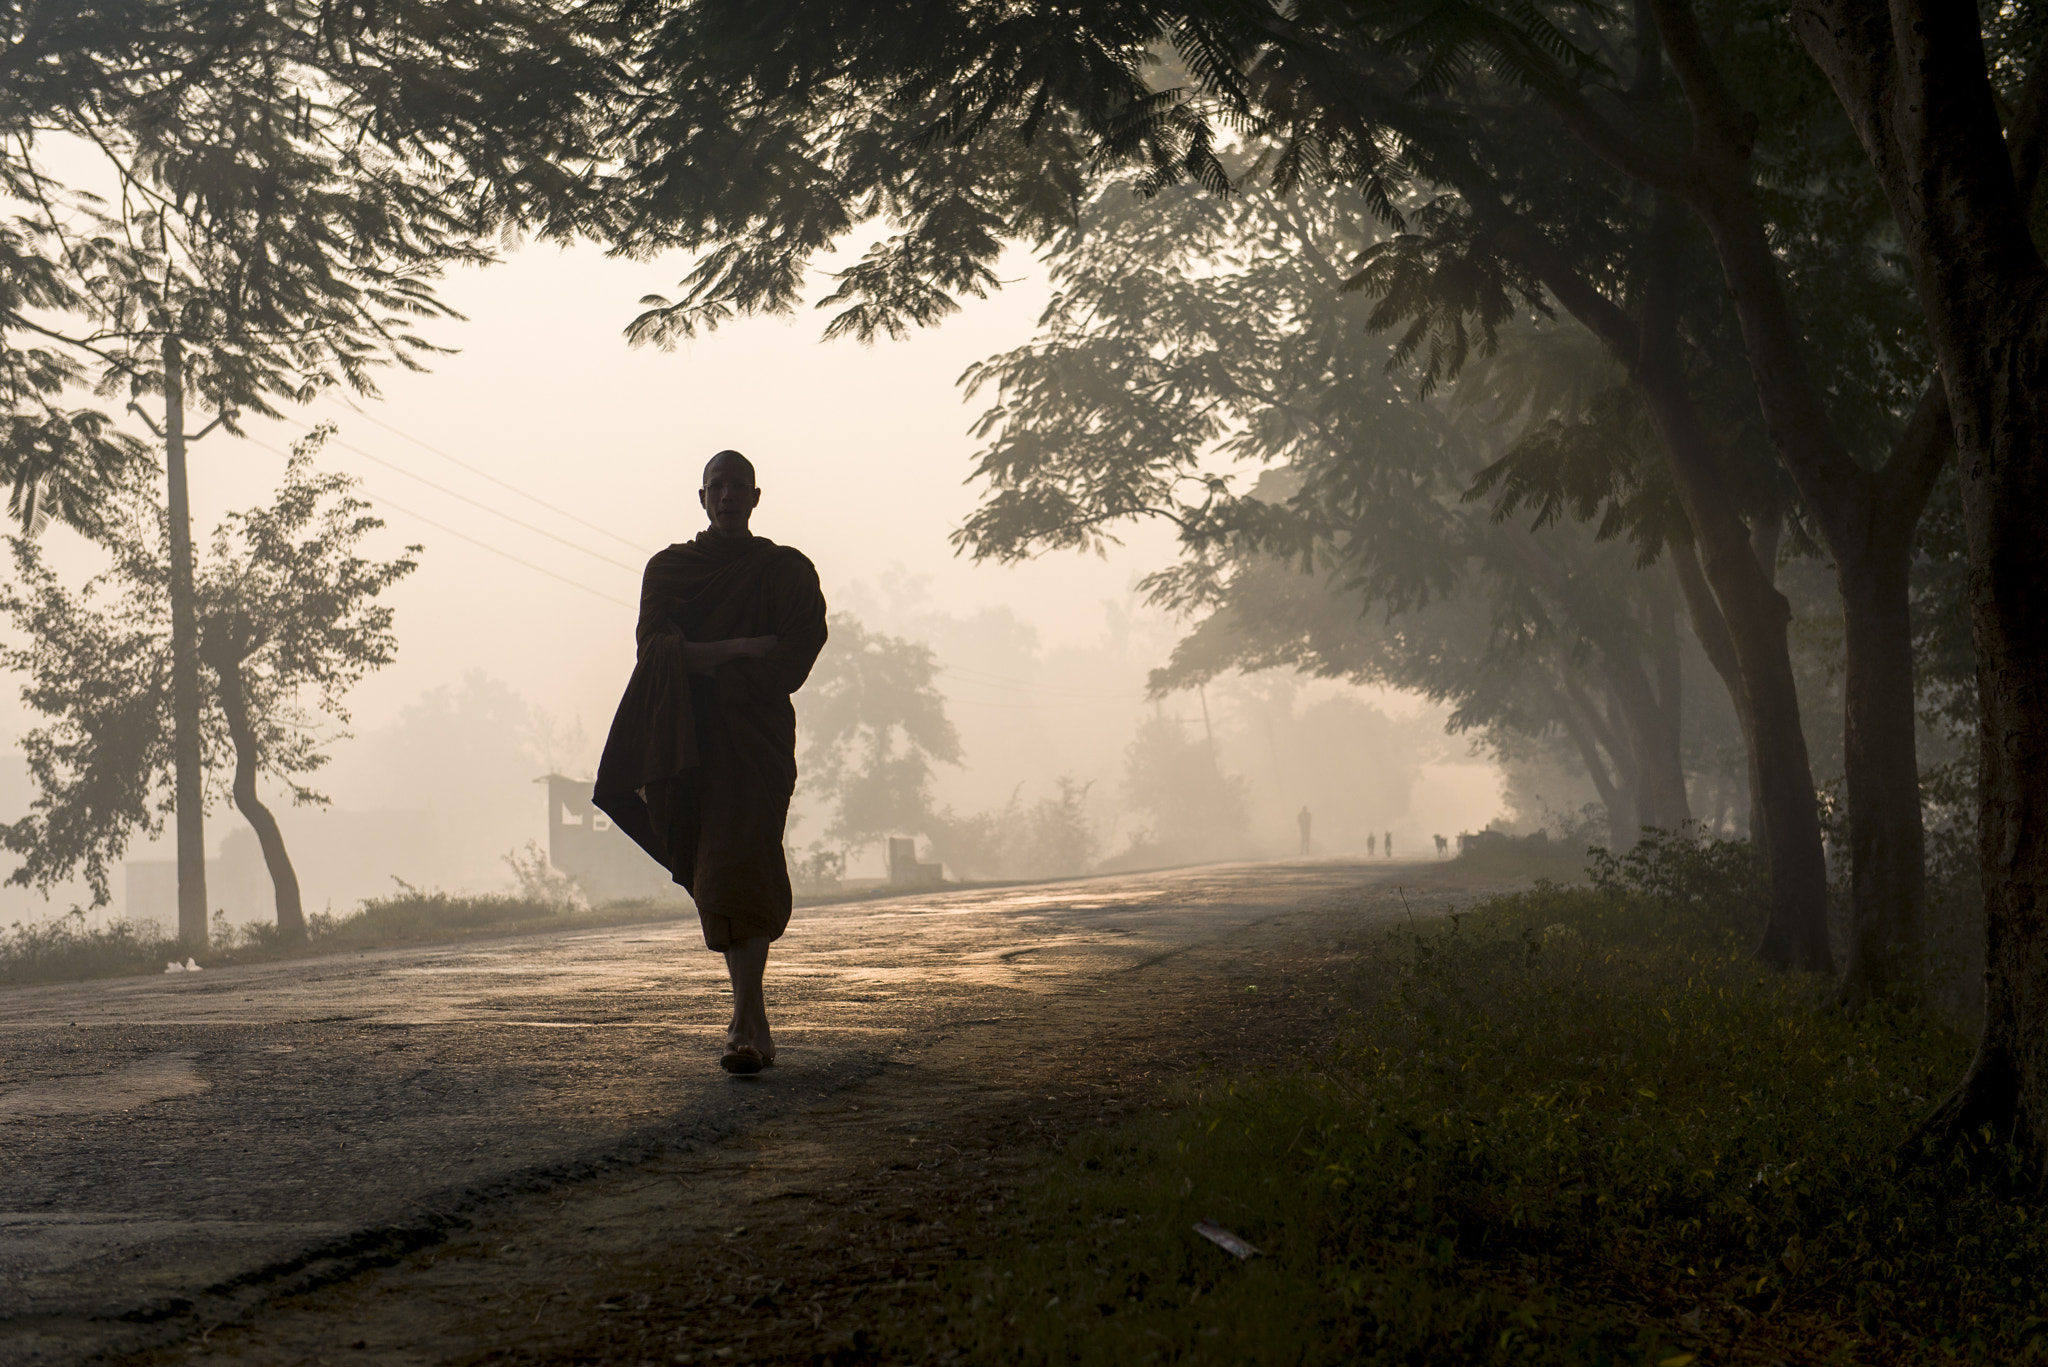 Photograph Monk Walking Through The Morning Fog by Tri Sanguanbun on 500px